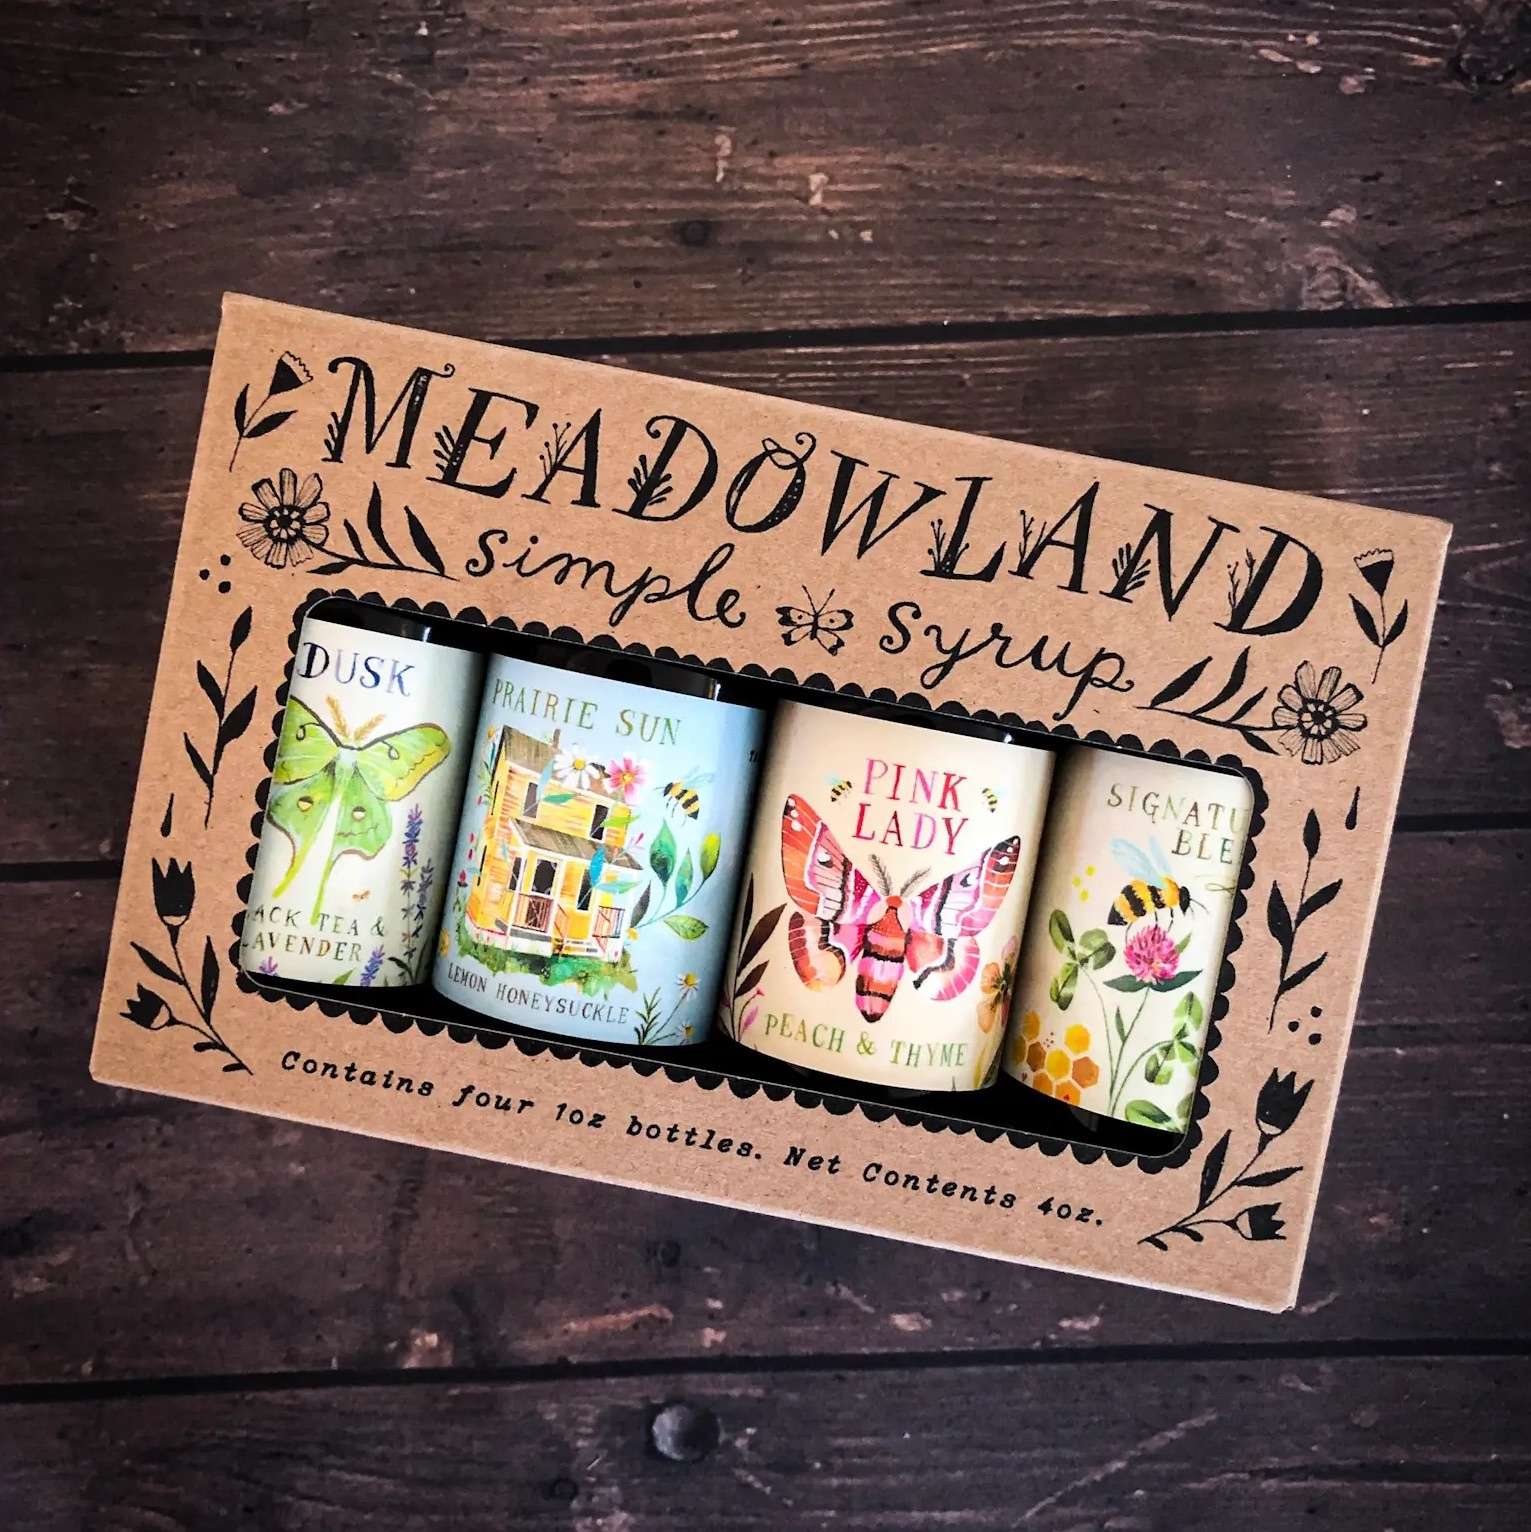 Meadowland - MEA Daydream Simple Syrup Collection